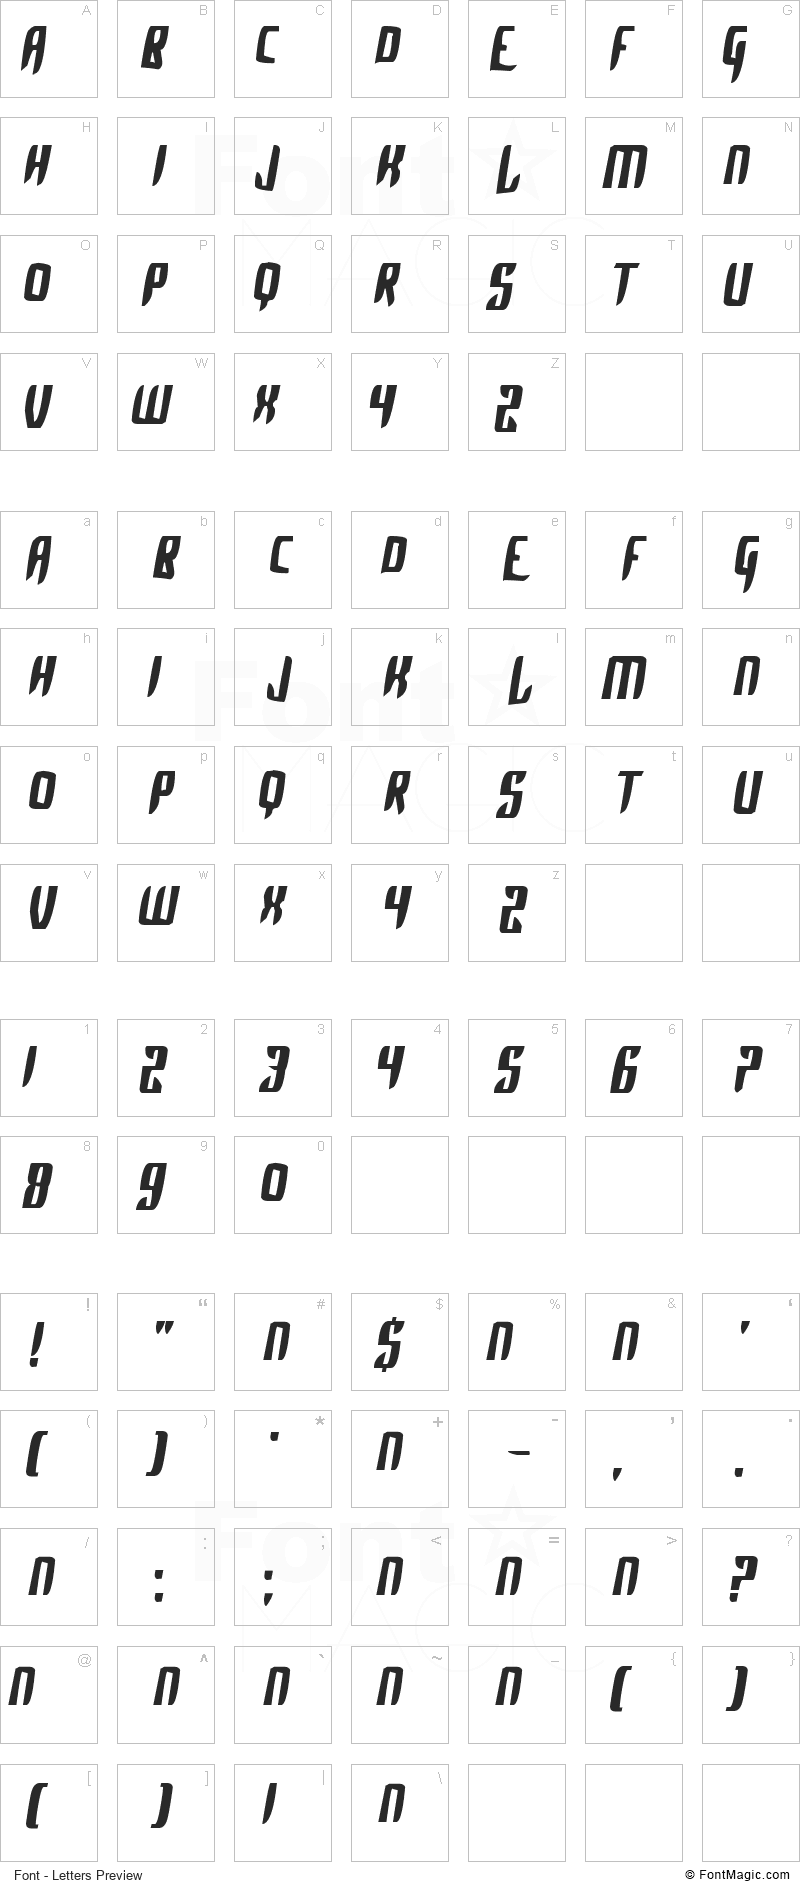 Alpha Sapphire Font - All Latters Preview Chart